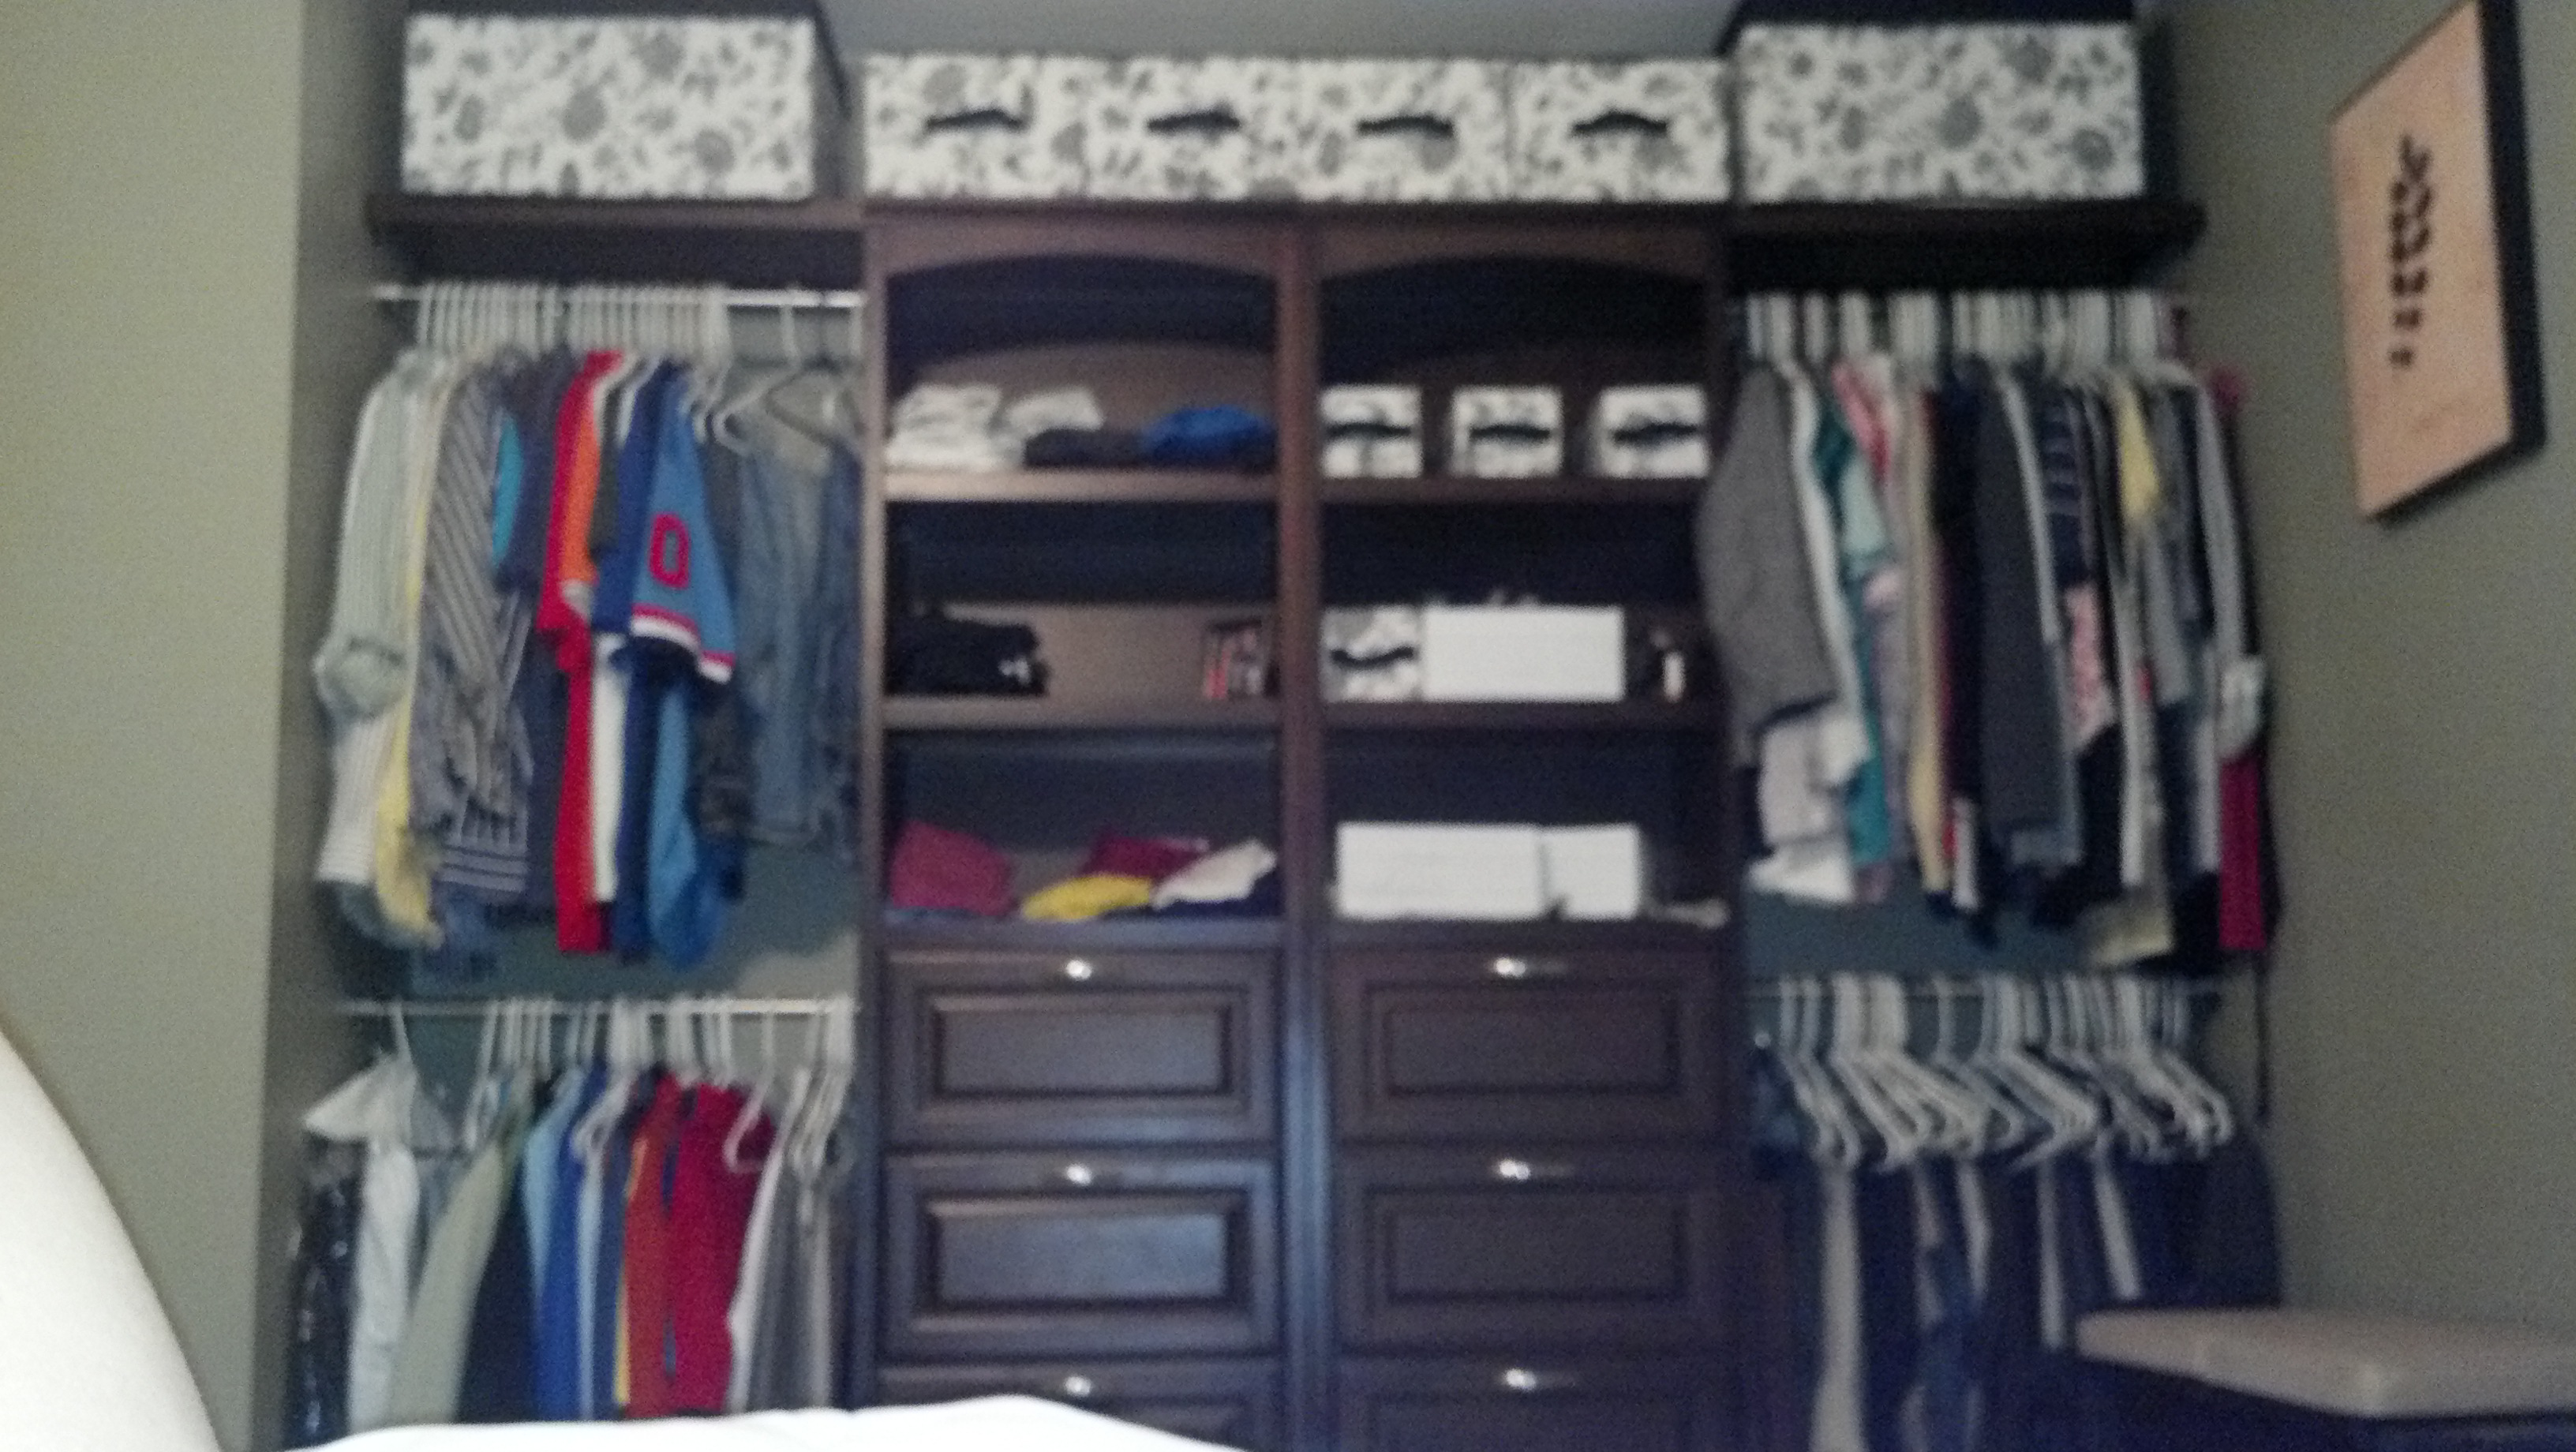 Lowes Wire Shelving | Closet Installation Lowes | Lowes Shelving Systems